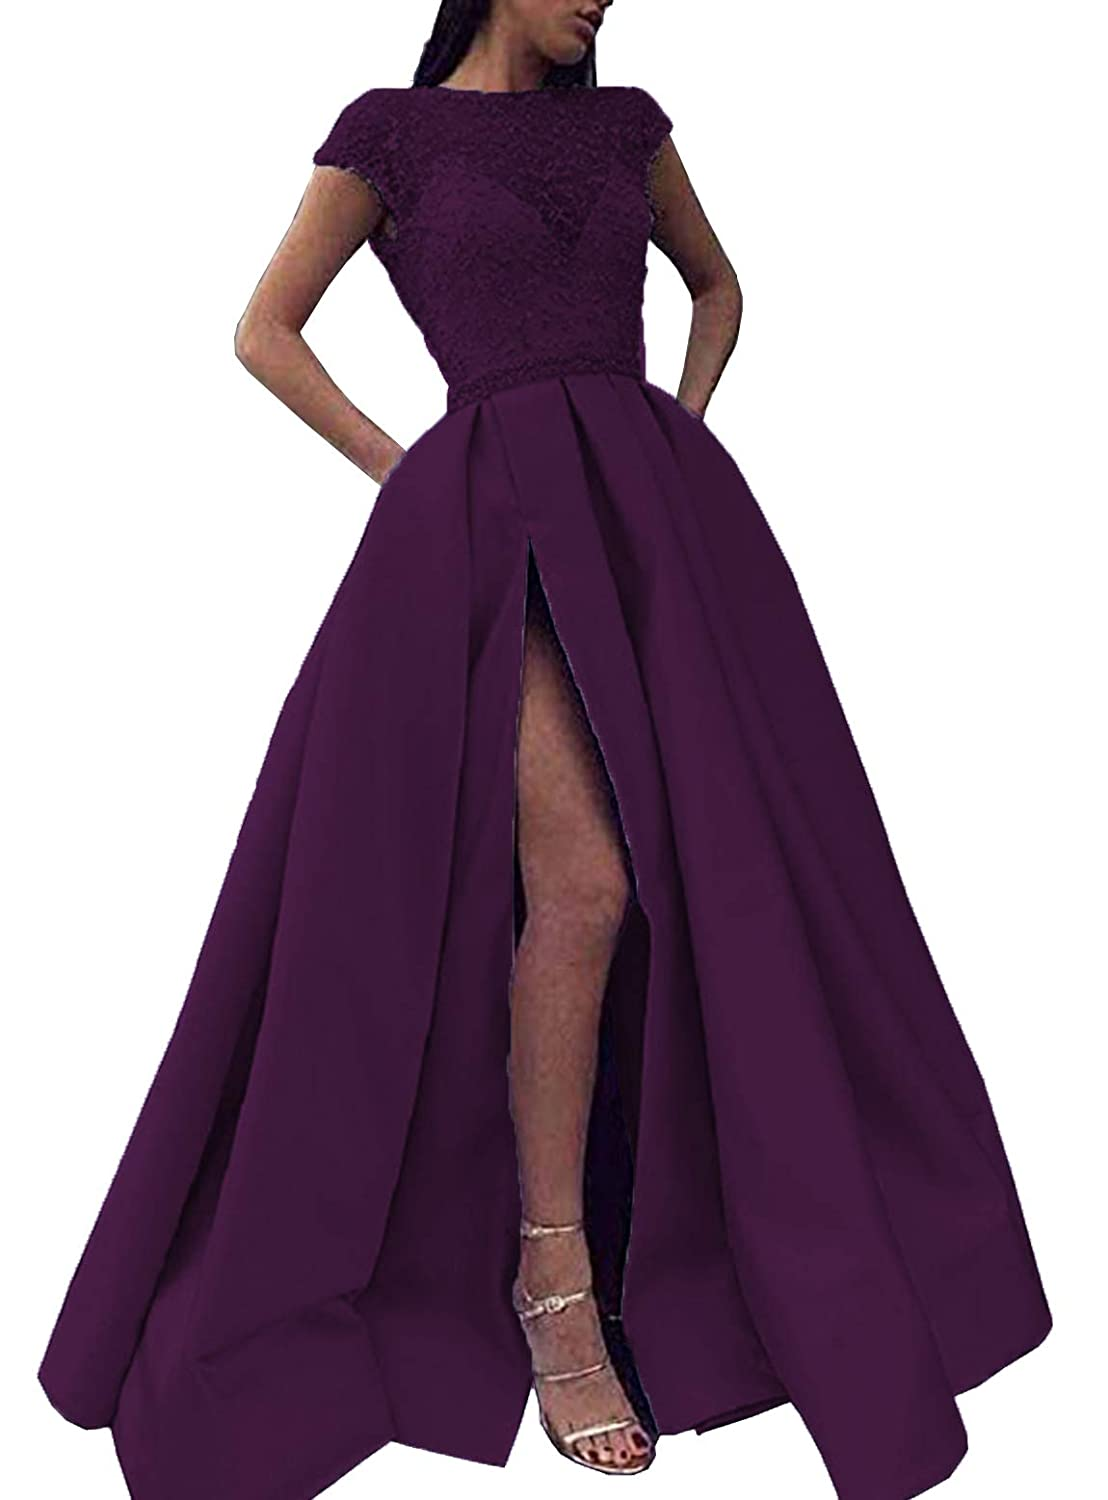 Grape Scarisee Womens Short Sleeves Beaded Prom Party Evening Dresses Split FormalA228